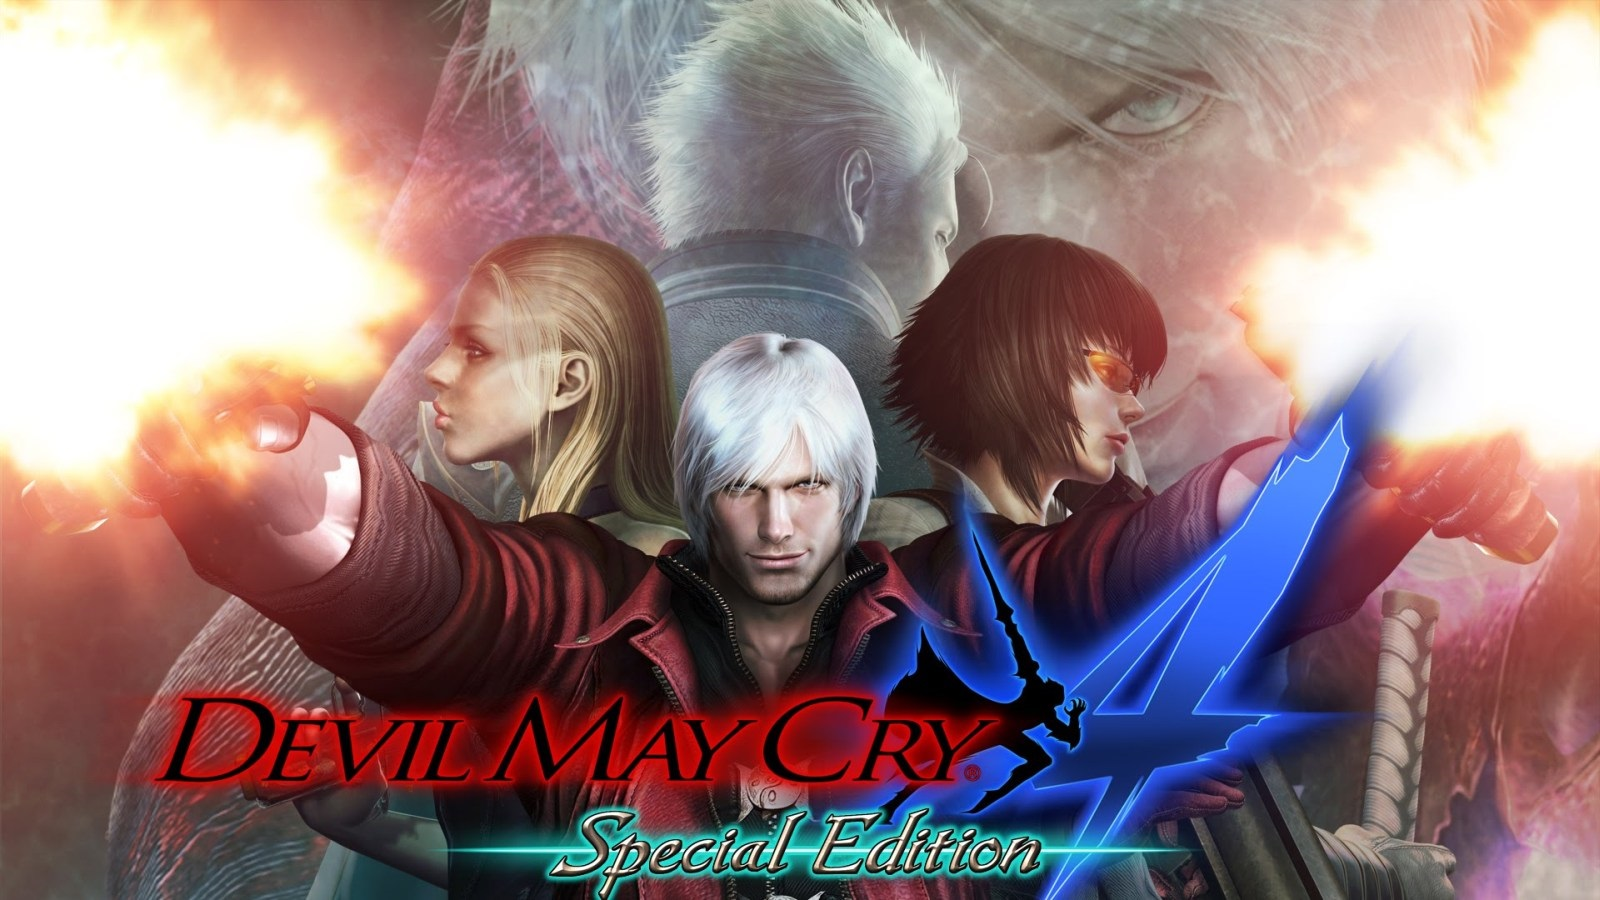 Devil May Cry serie; Devil May Cry 4 (2008): logo, cover